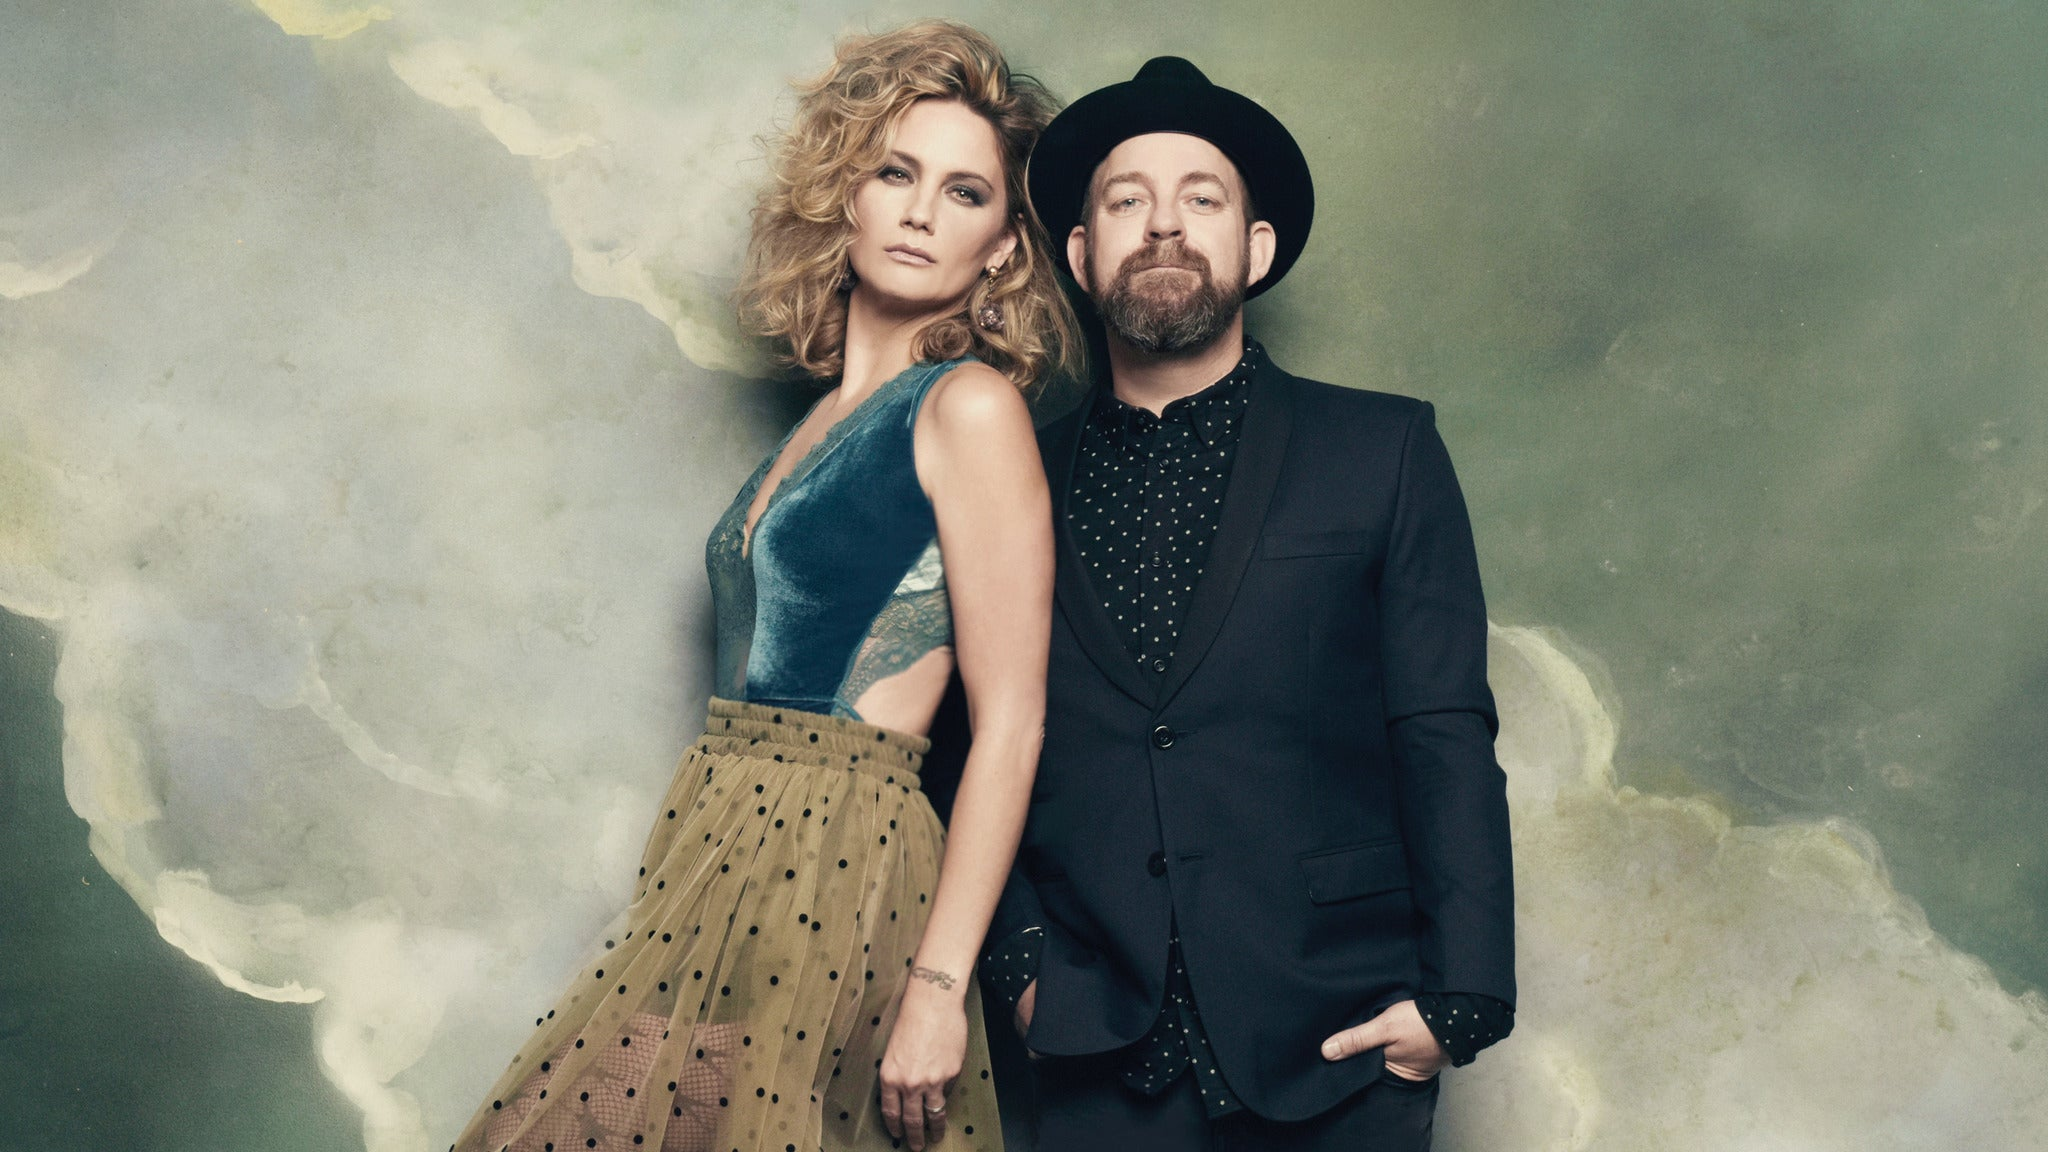 Sugarland - Still The Same Tour at KFC Yum! Center